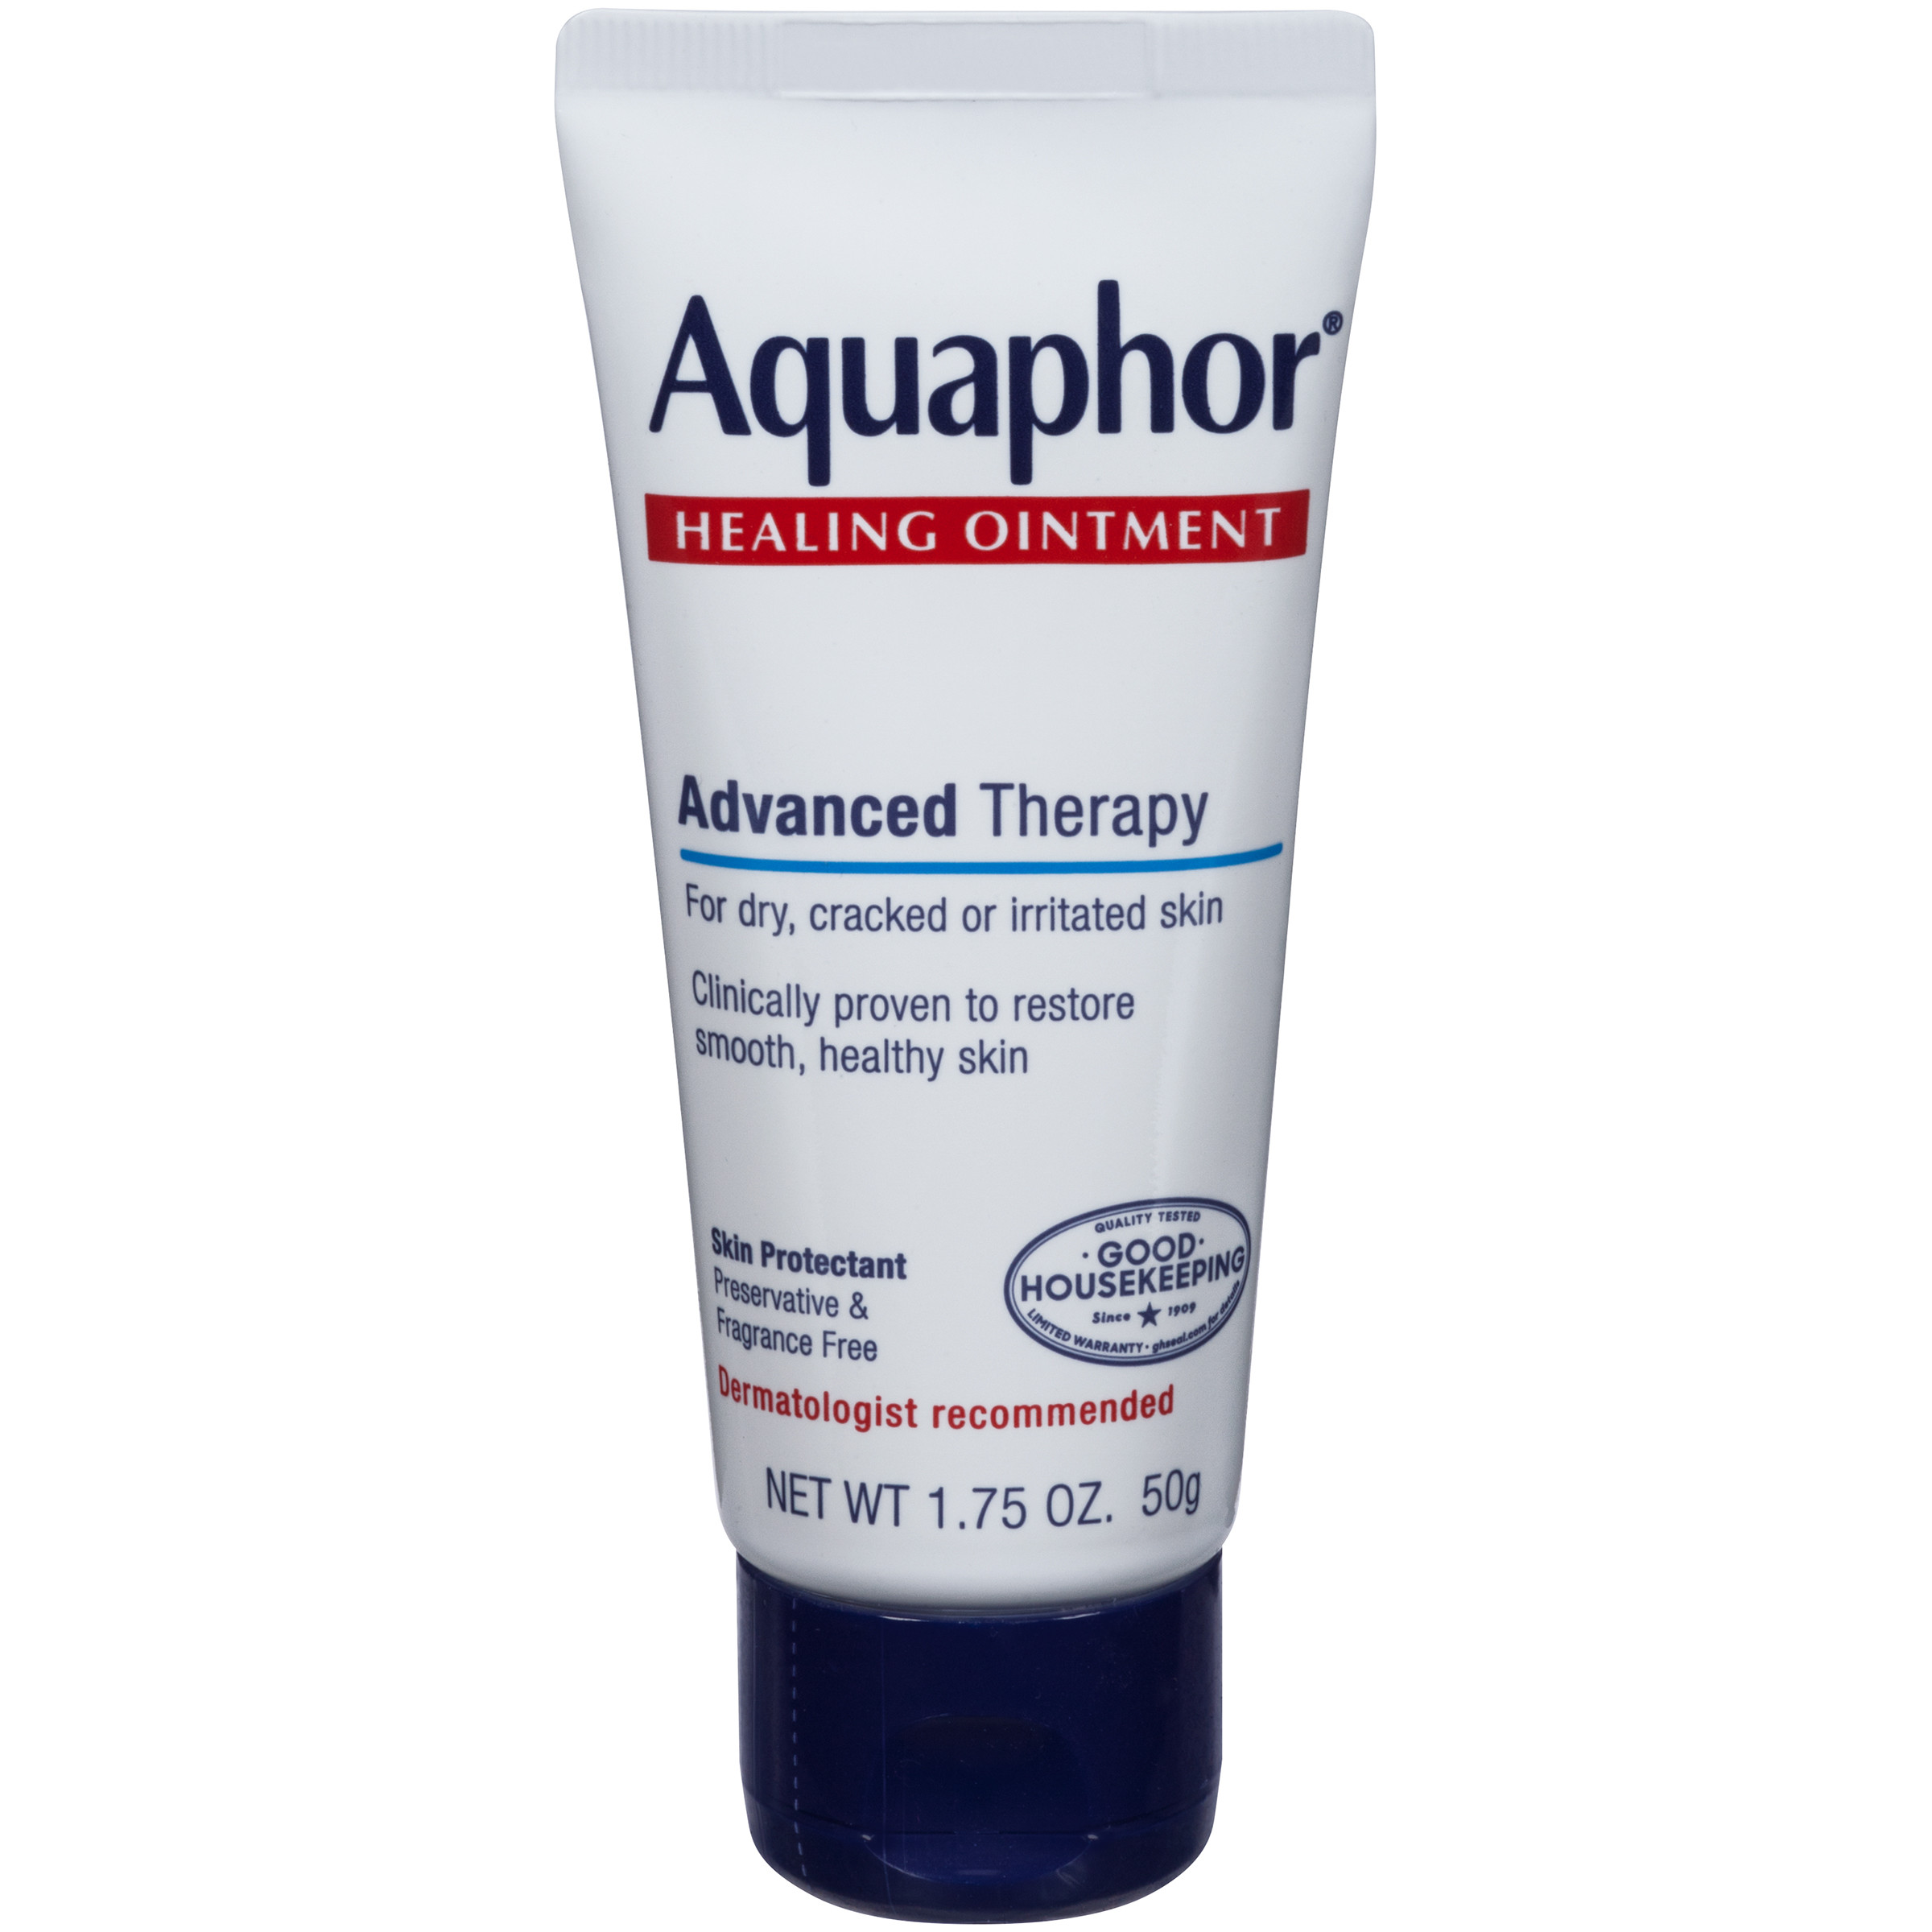 Aquaphor Advanced Therapy Healing Ointment Skin Protectant 1.75 oz. Tube